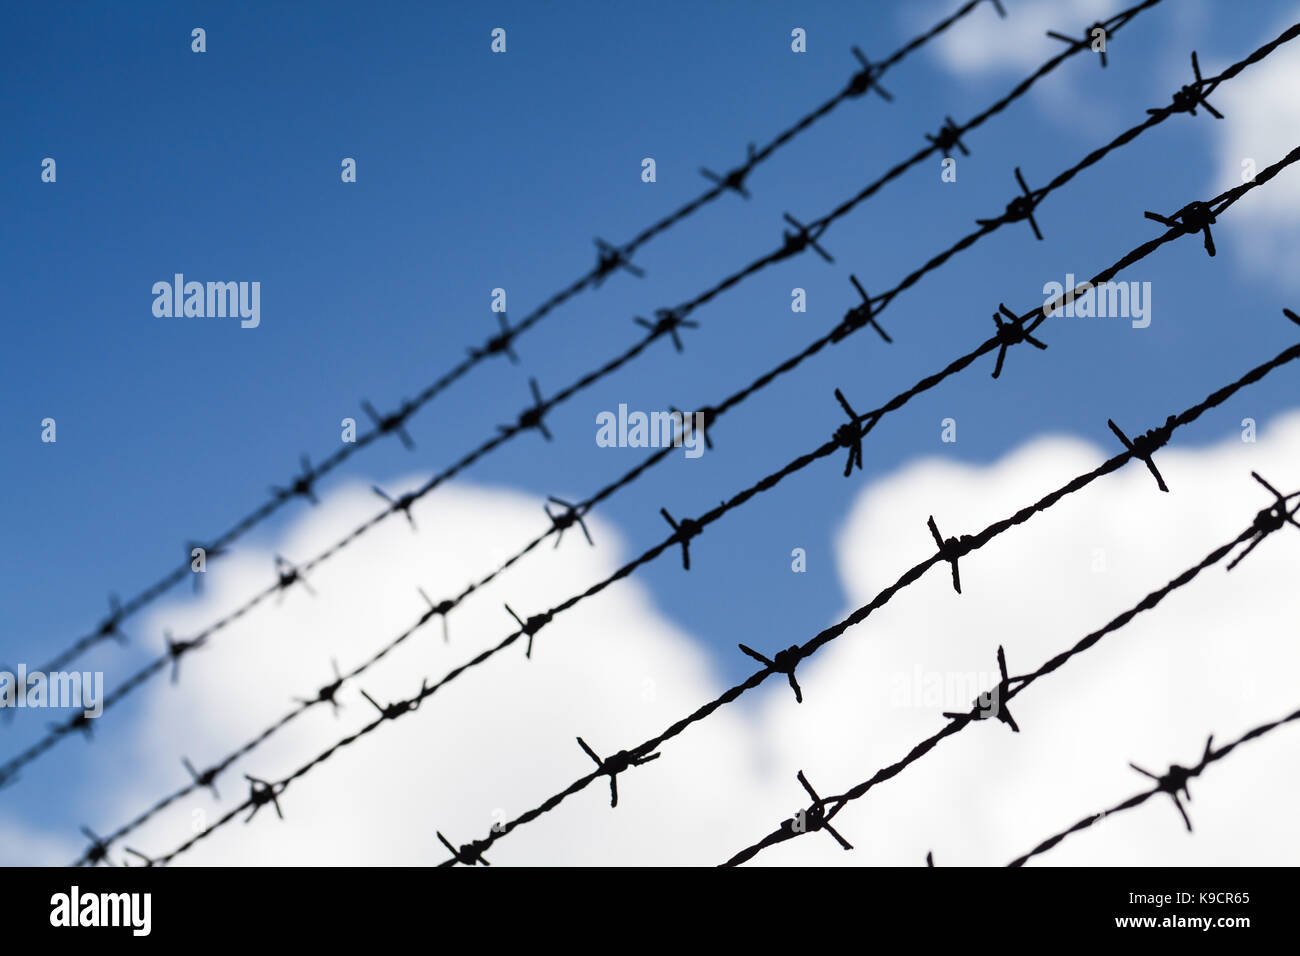 Black barbed wires over cloudy blue sky background, close up photo with selective focus - Stock Image